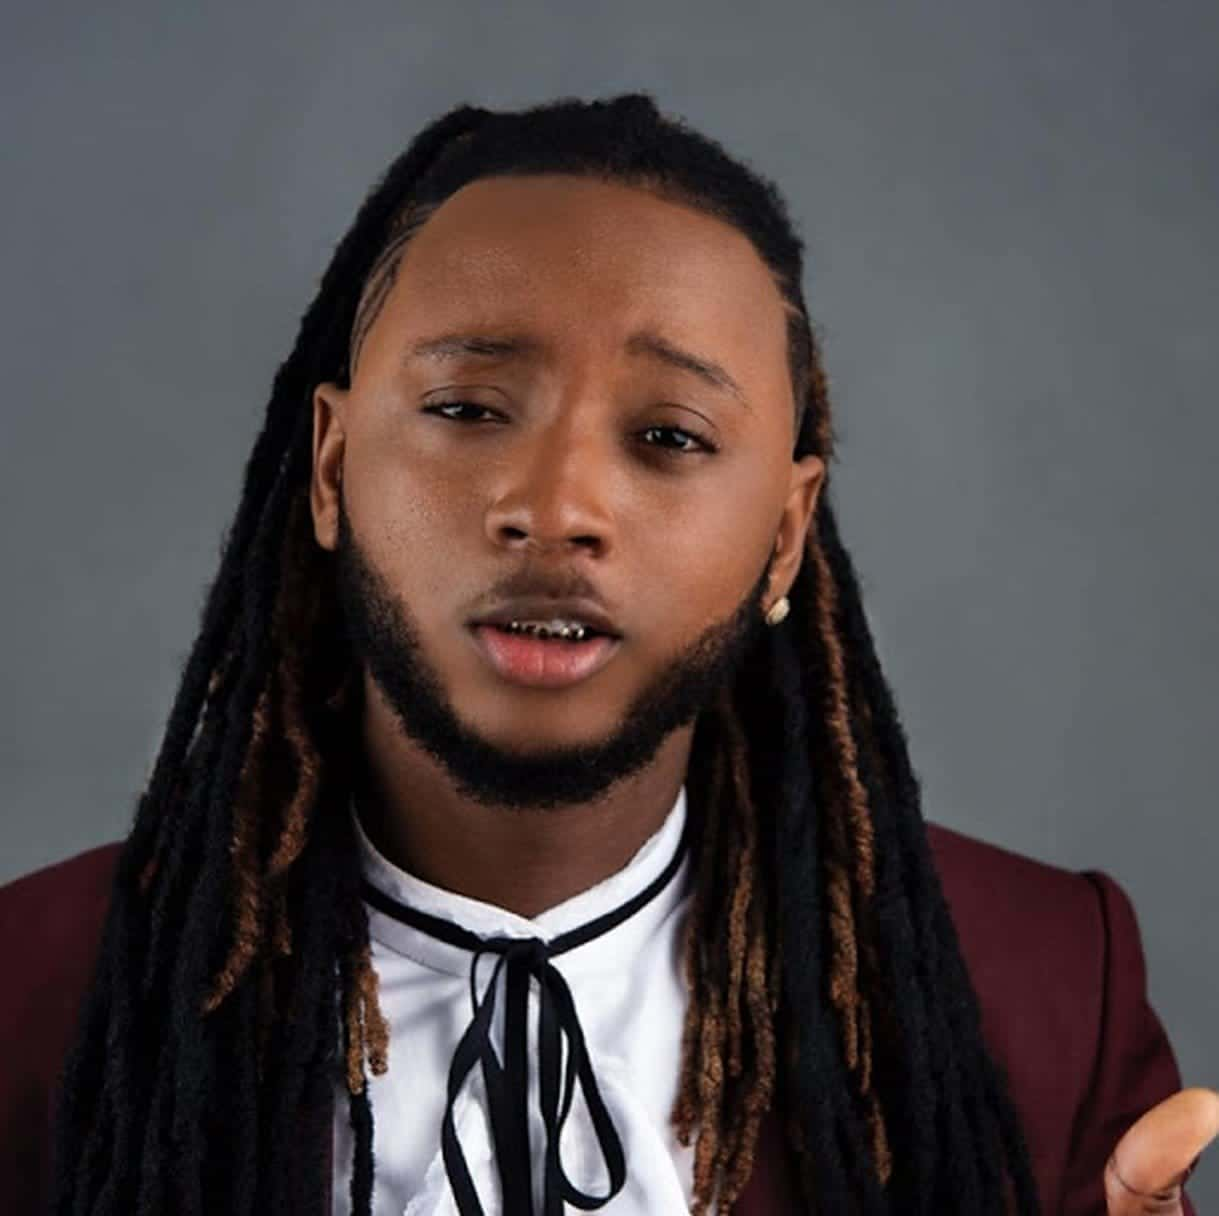 Why Nigeria Will Have More Young Billionaires In 2022 - Yung6ix